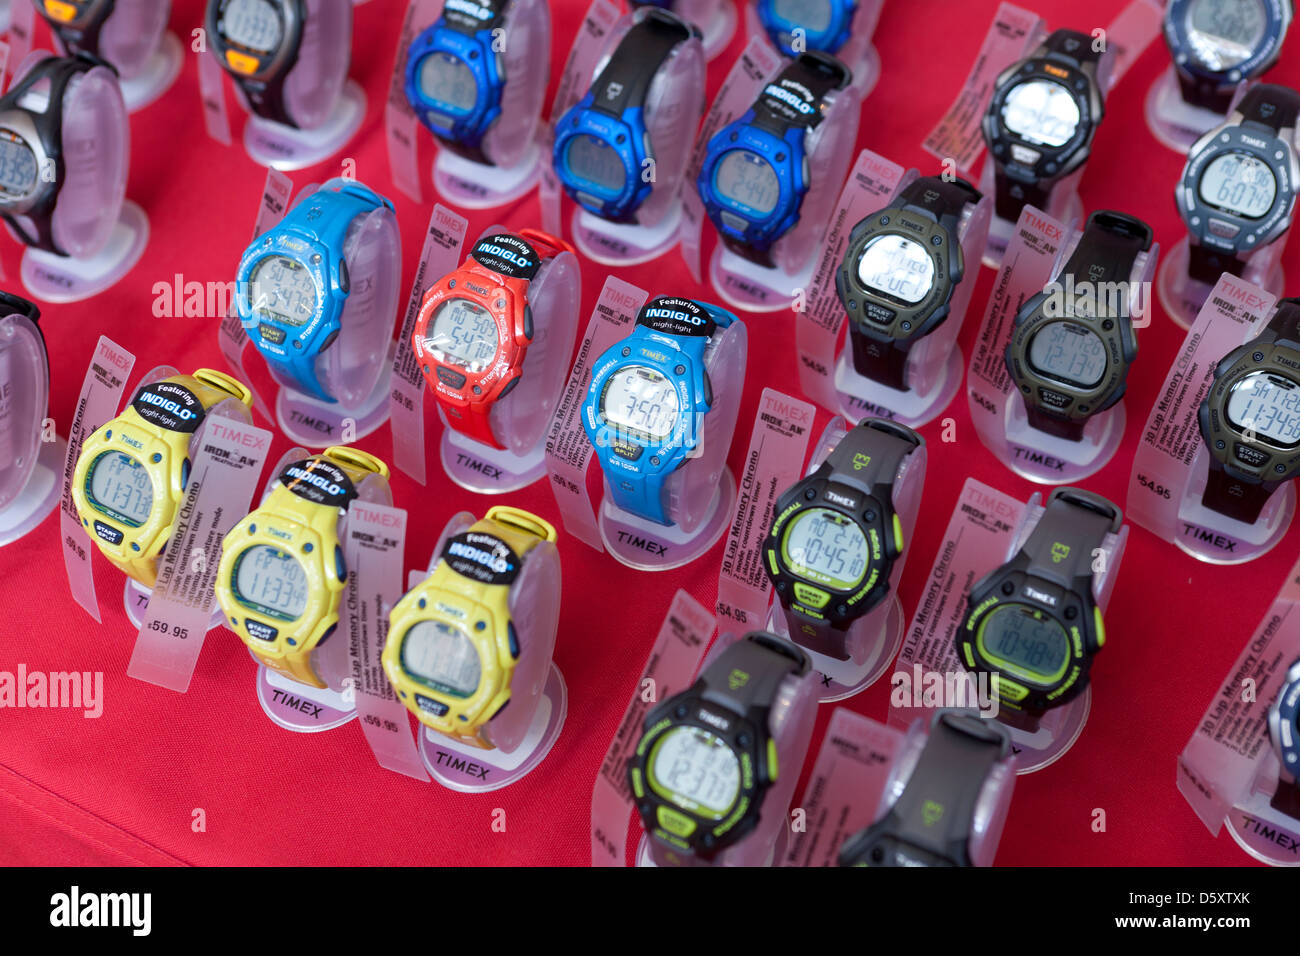 Timex watches on display - Stock Image